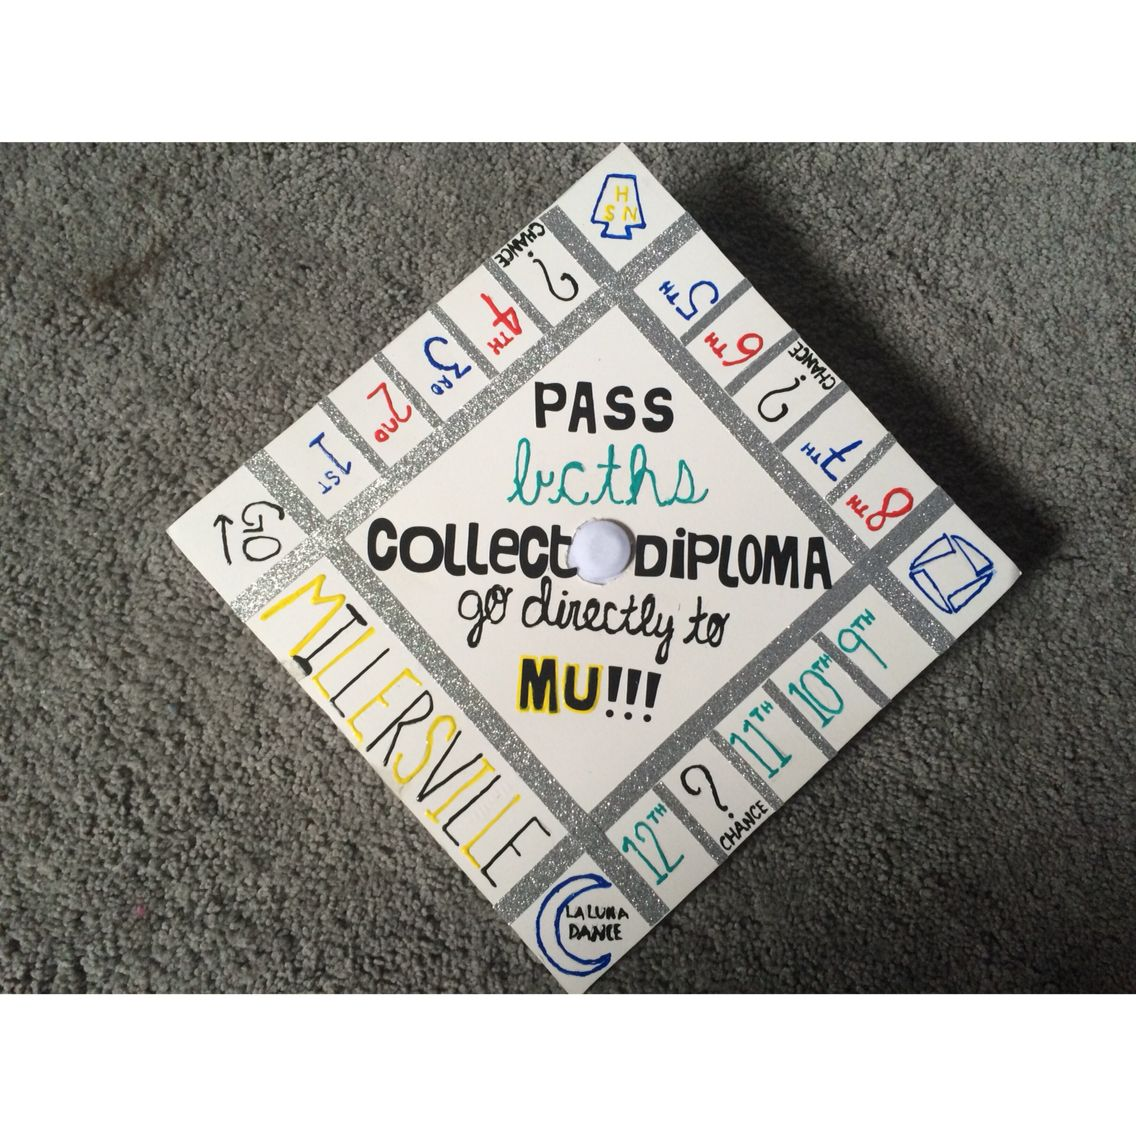 Monopoly themed graduation cap! The middle is suppos